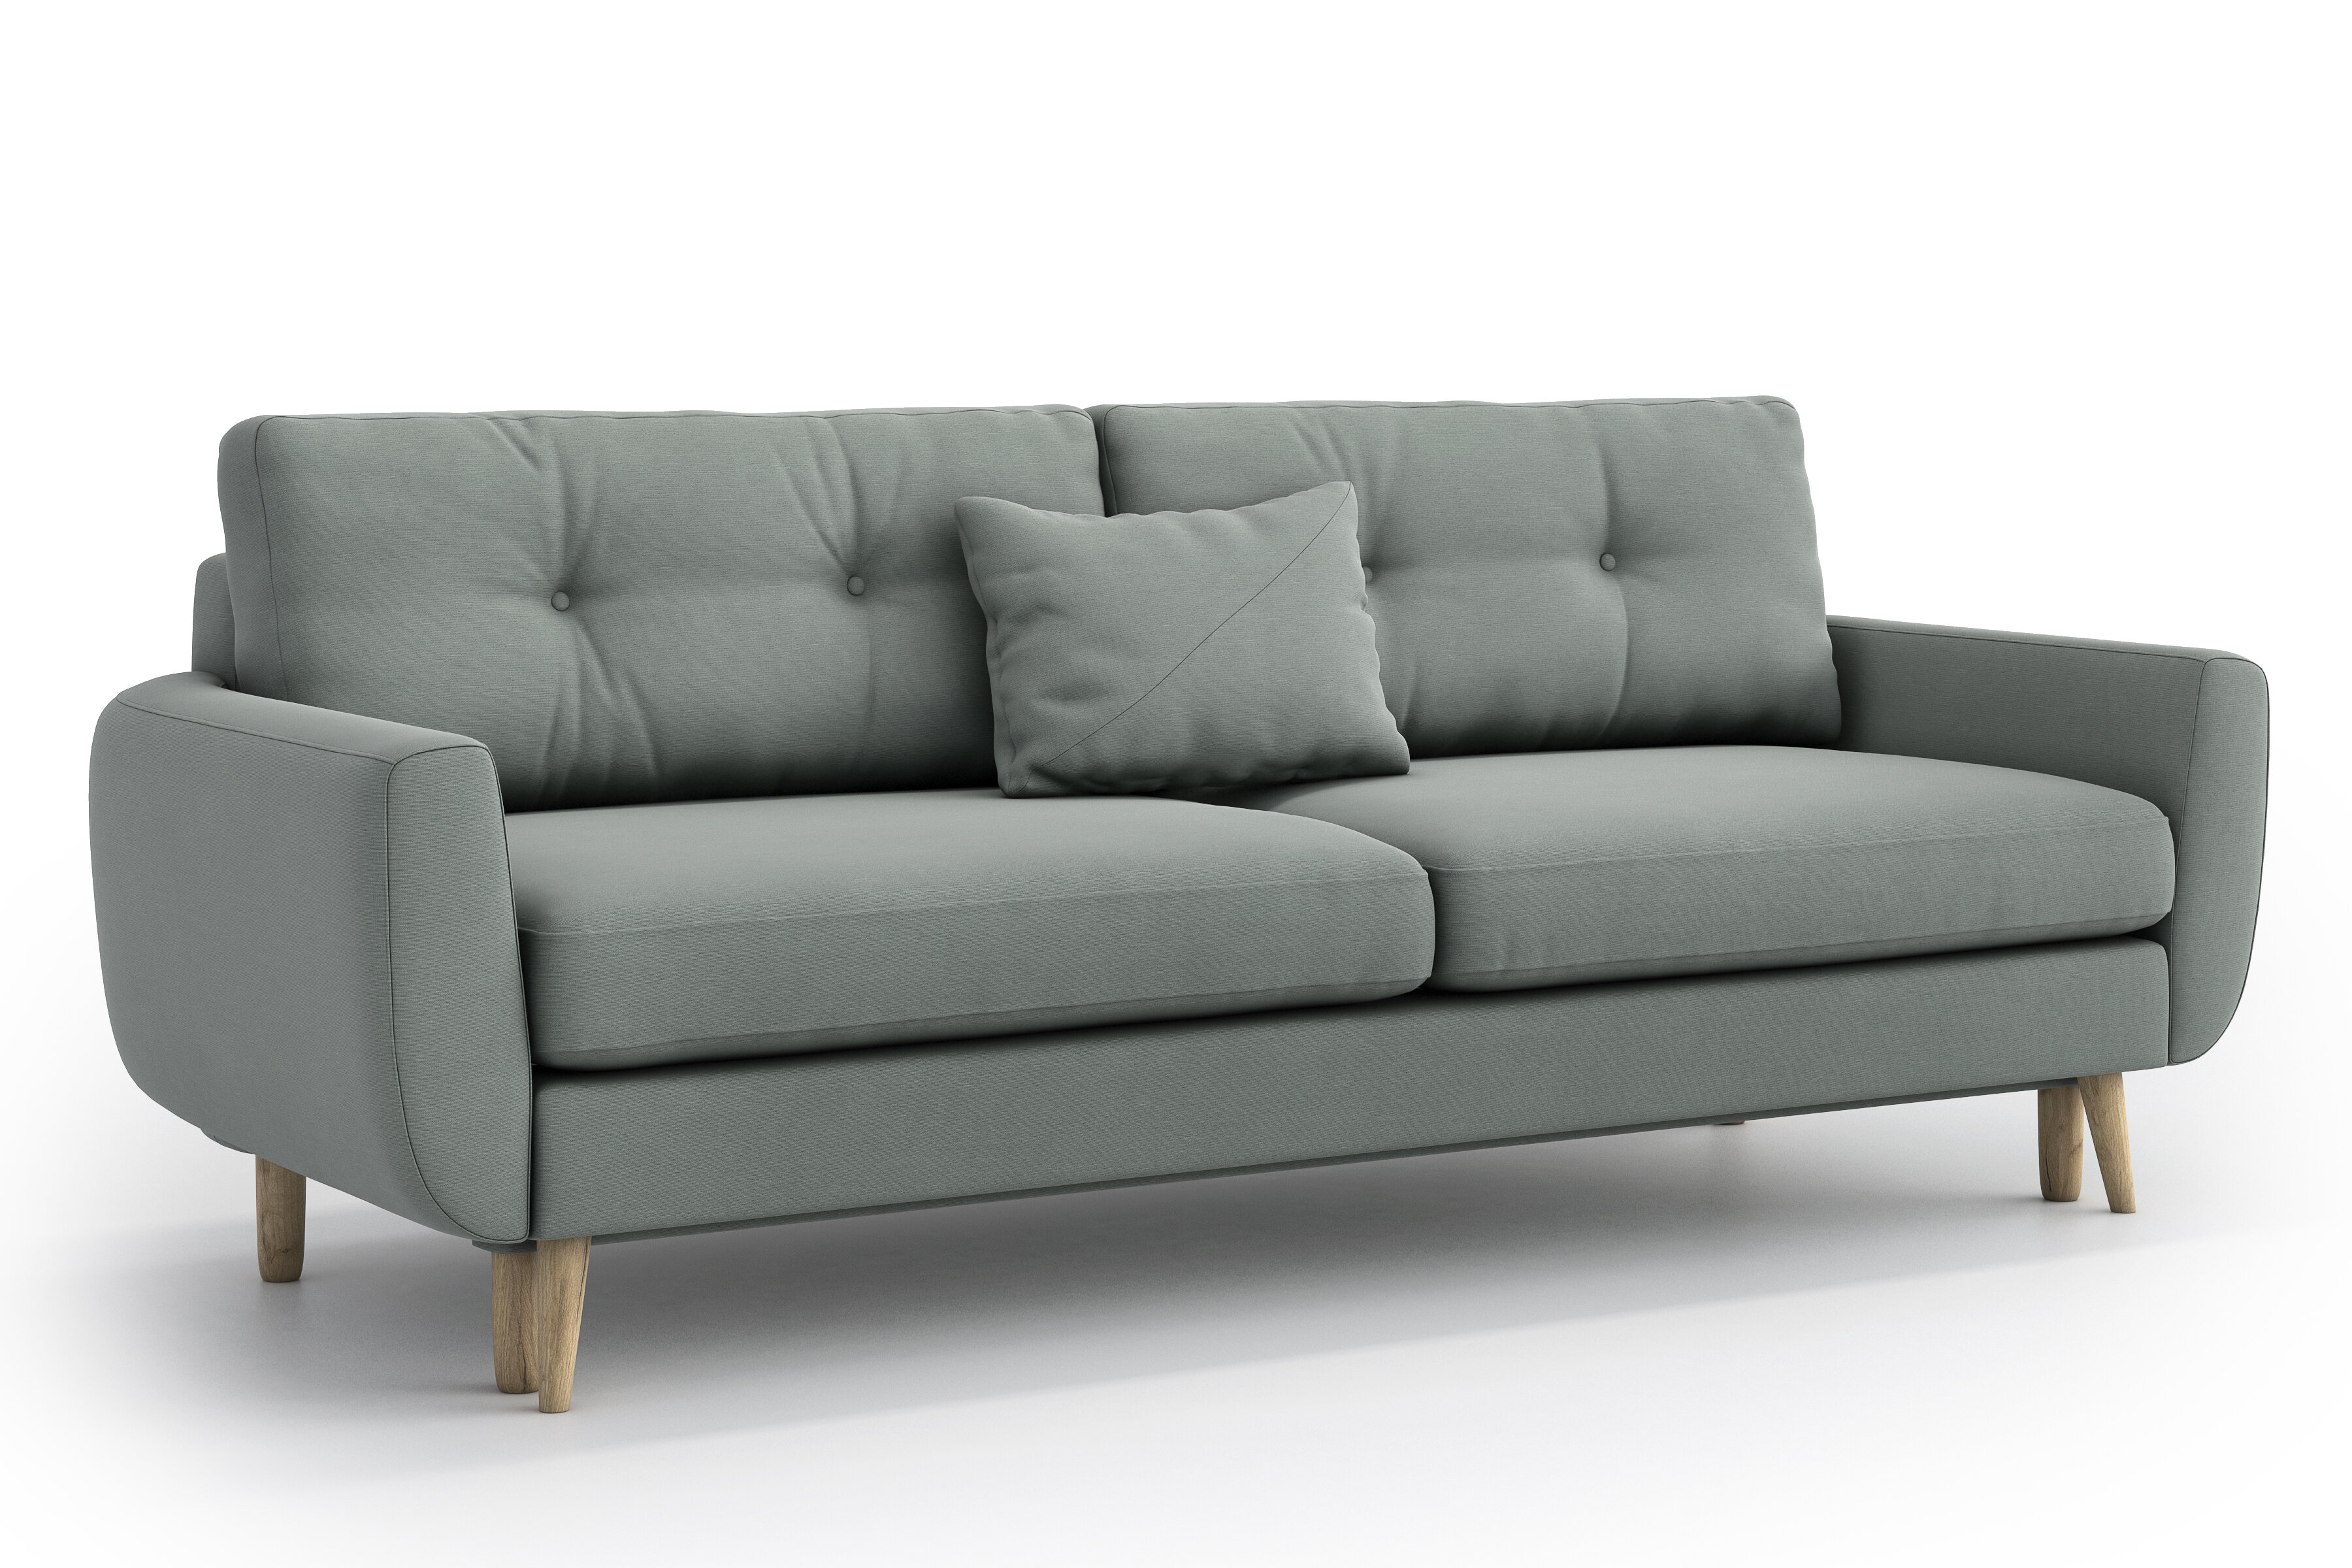 Miraculous Adaline 3 Seater Clic Clac Sofa Bed Beutiful Home Inspiration Cosmmahrainfo